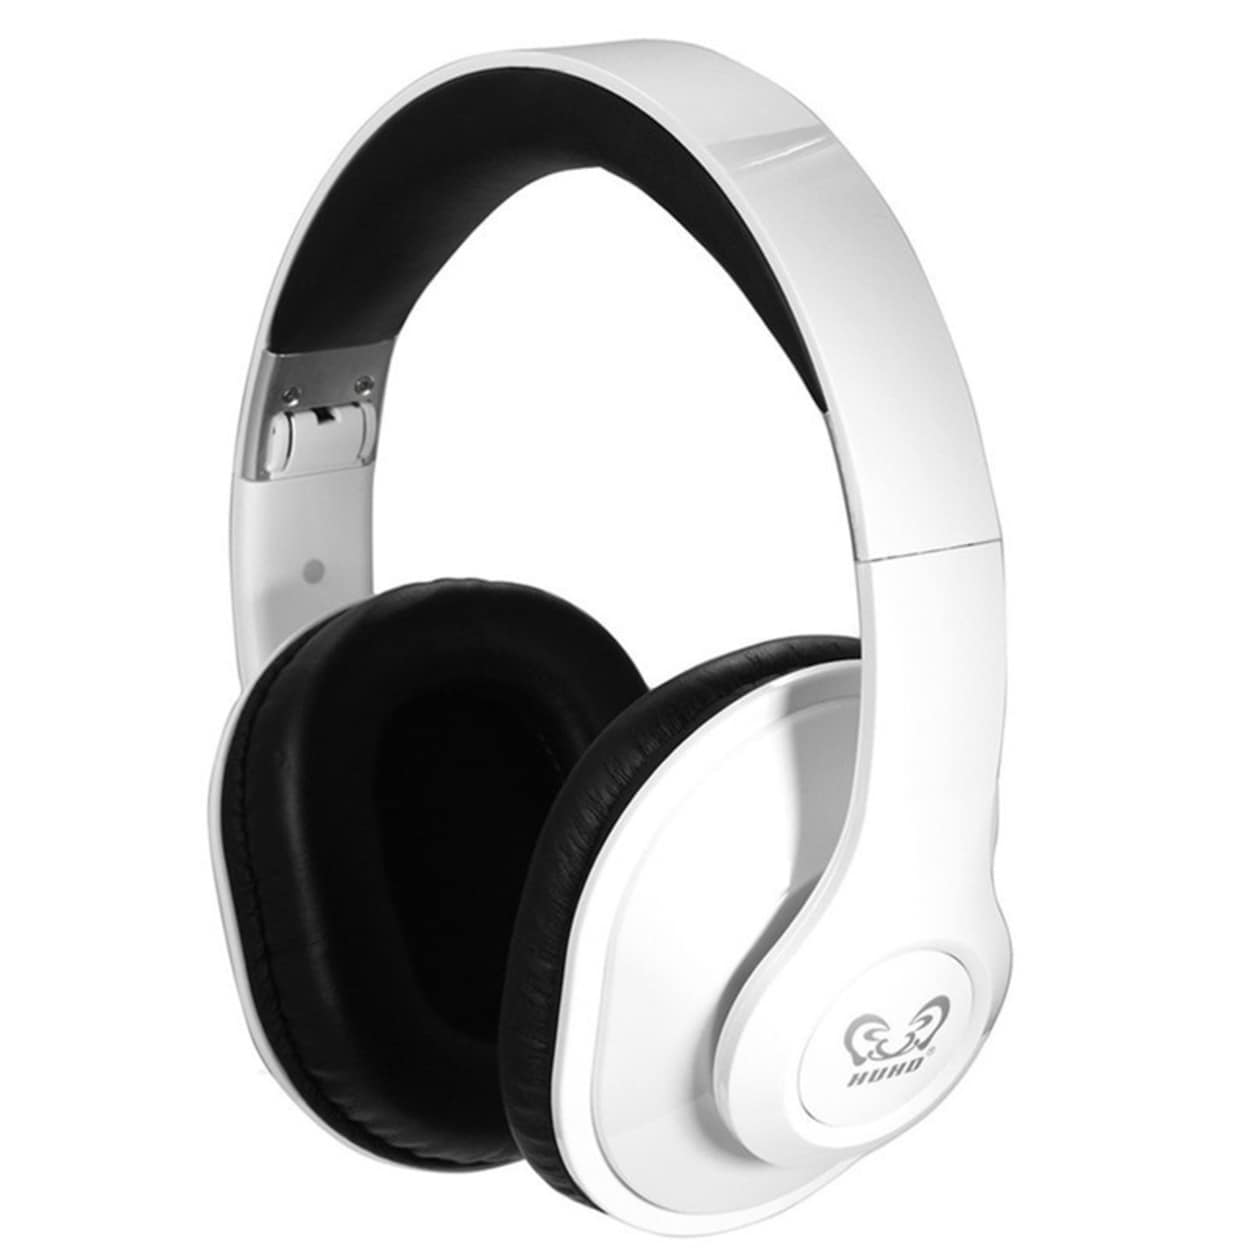 Shop The Most Stylish Comfortable Bluetooth Headset Folding Bluetooth Headset With High Quality Head Wearing Headphones Free Shipping On Orders Over 45 Overstock 23124535